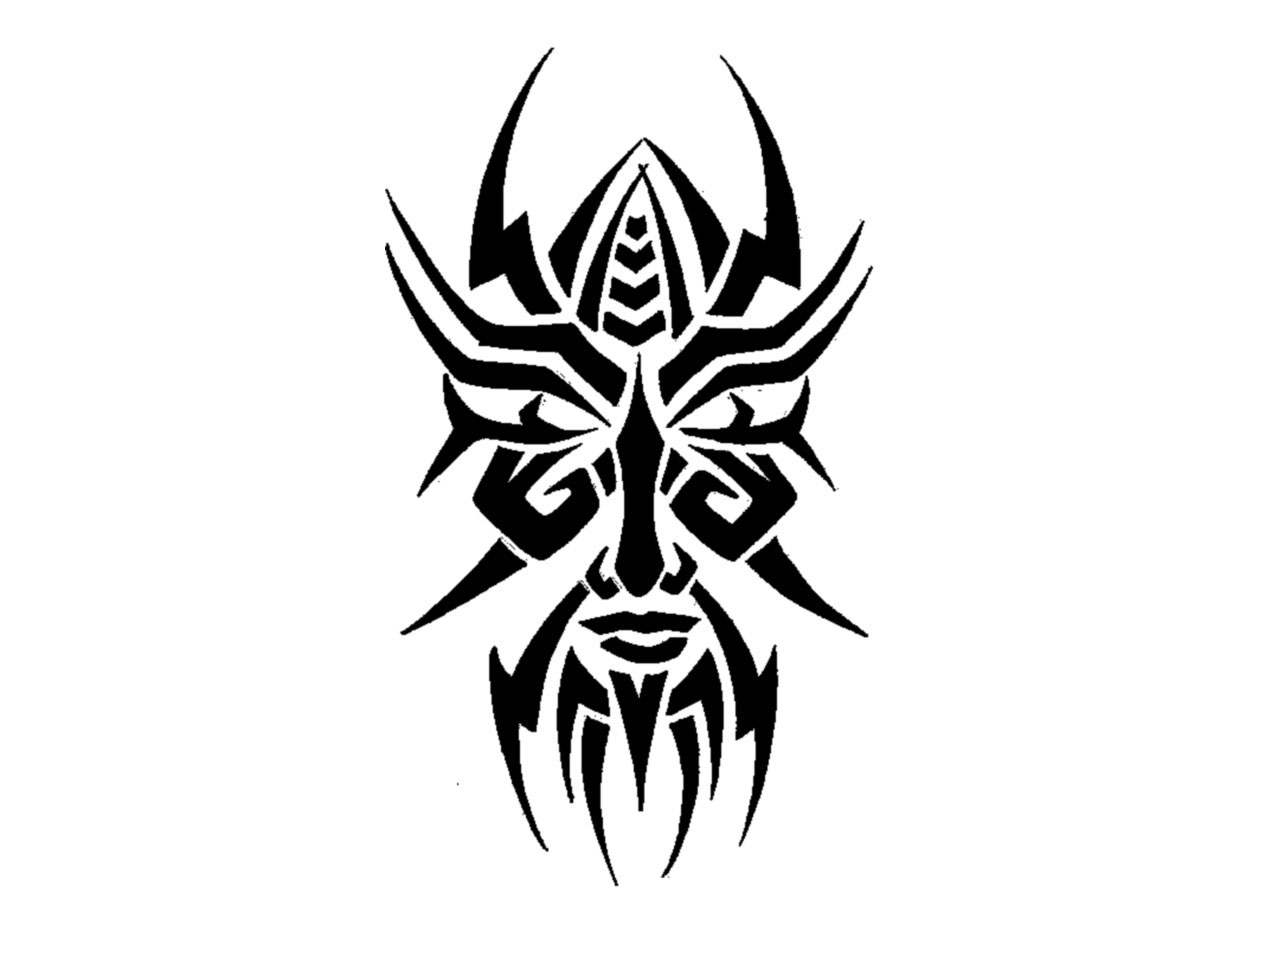 Tribal Sharp Edges Mask Tattoo Design photo - 1